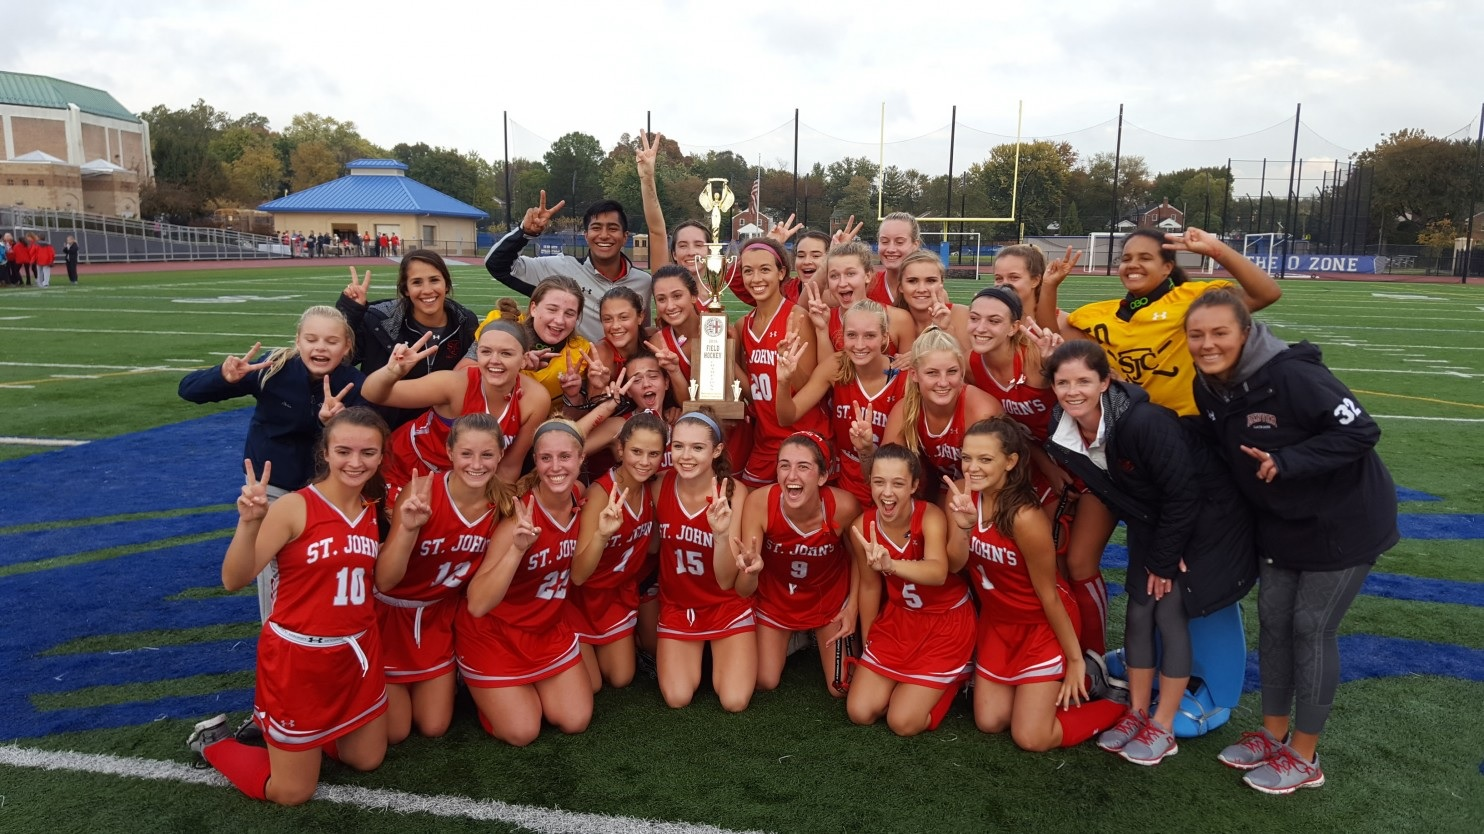 2016 Field Hockey Champions St. John's College